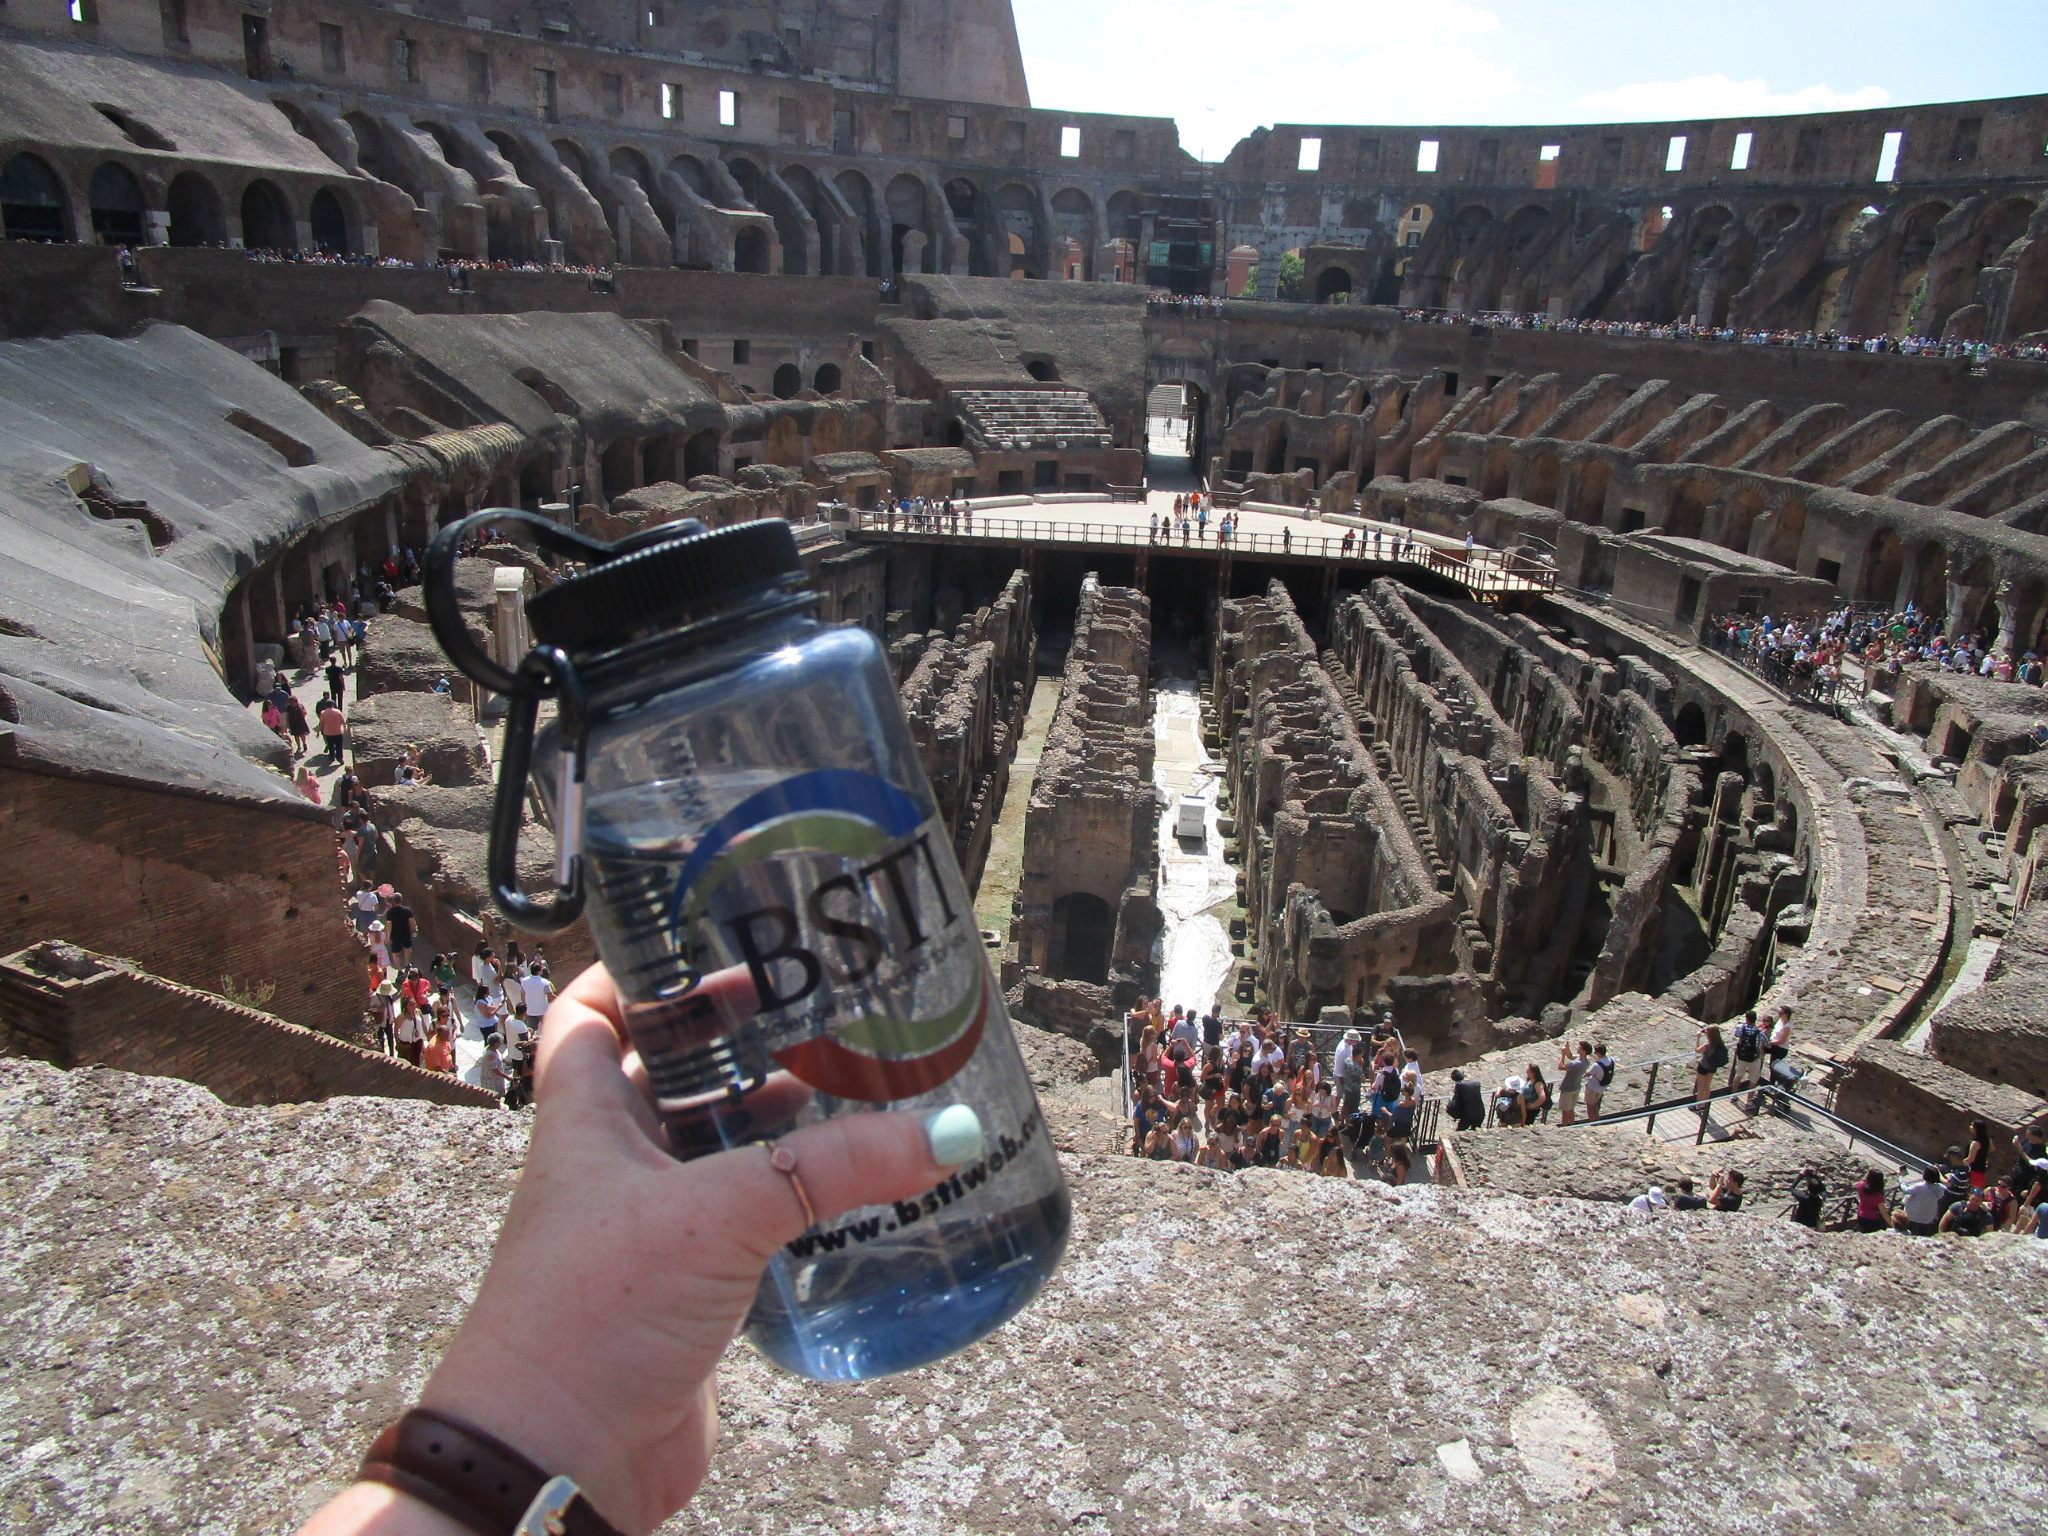 Observing the inside of the Colosseum in Rome, Italy